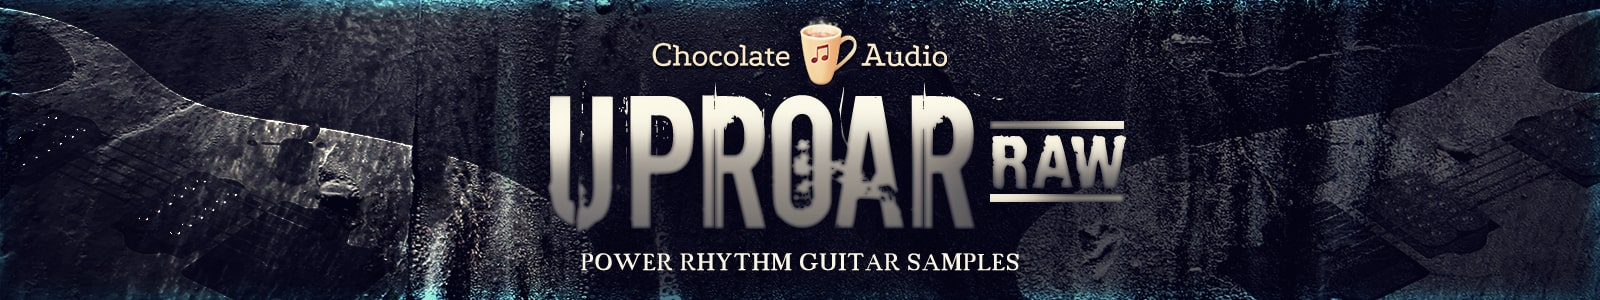 uproar raw by chocolate audio